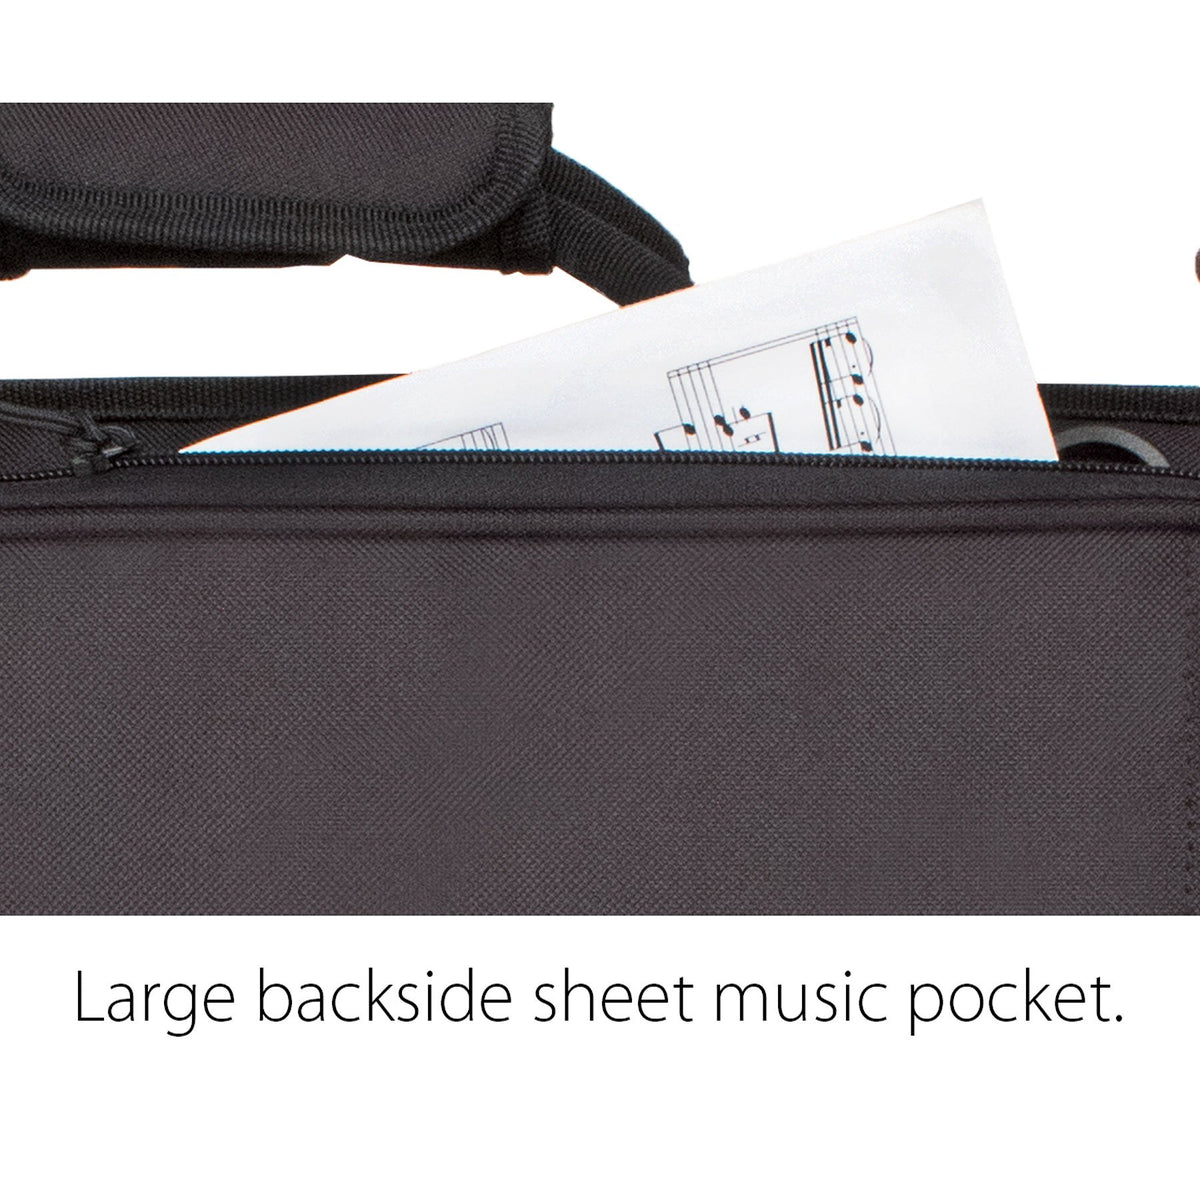 Protec - French Horn Explorer Gig Bag with Sheet Music Pocket-Case-Protec-Music Elements